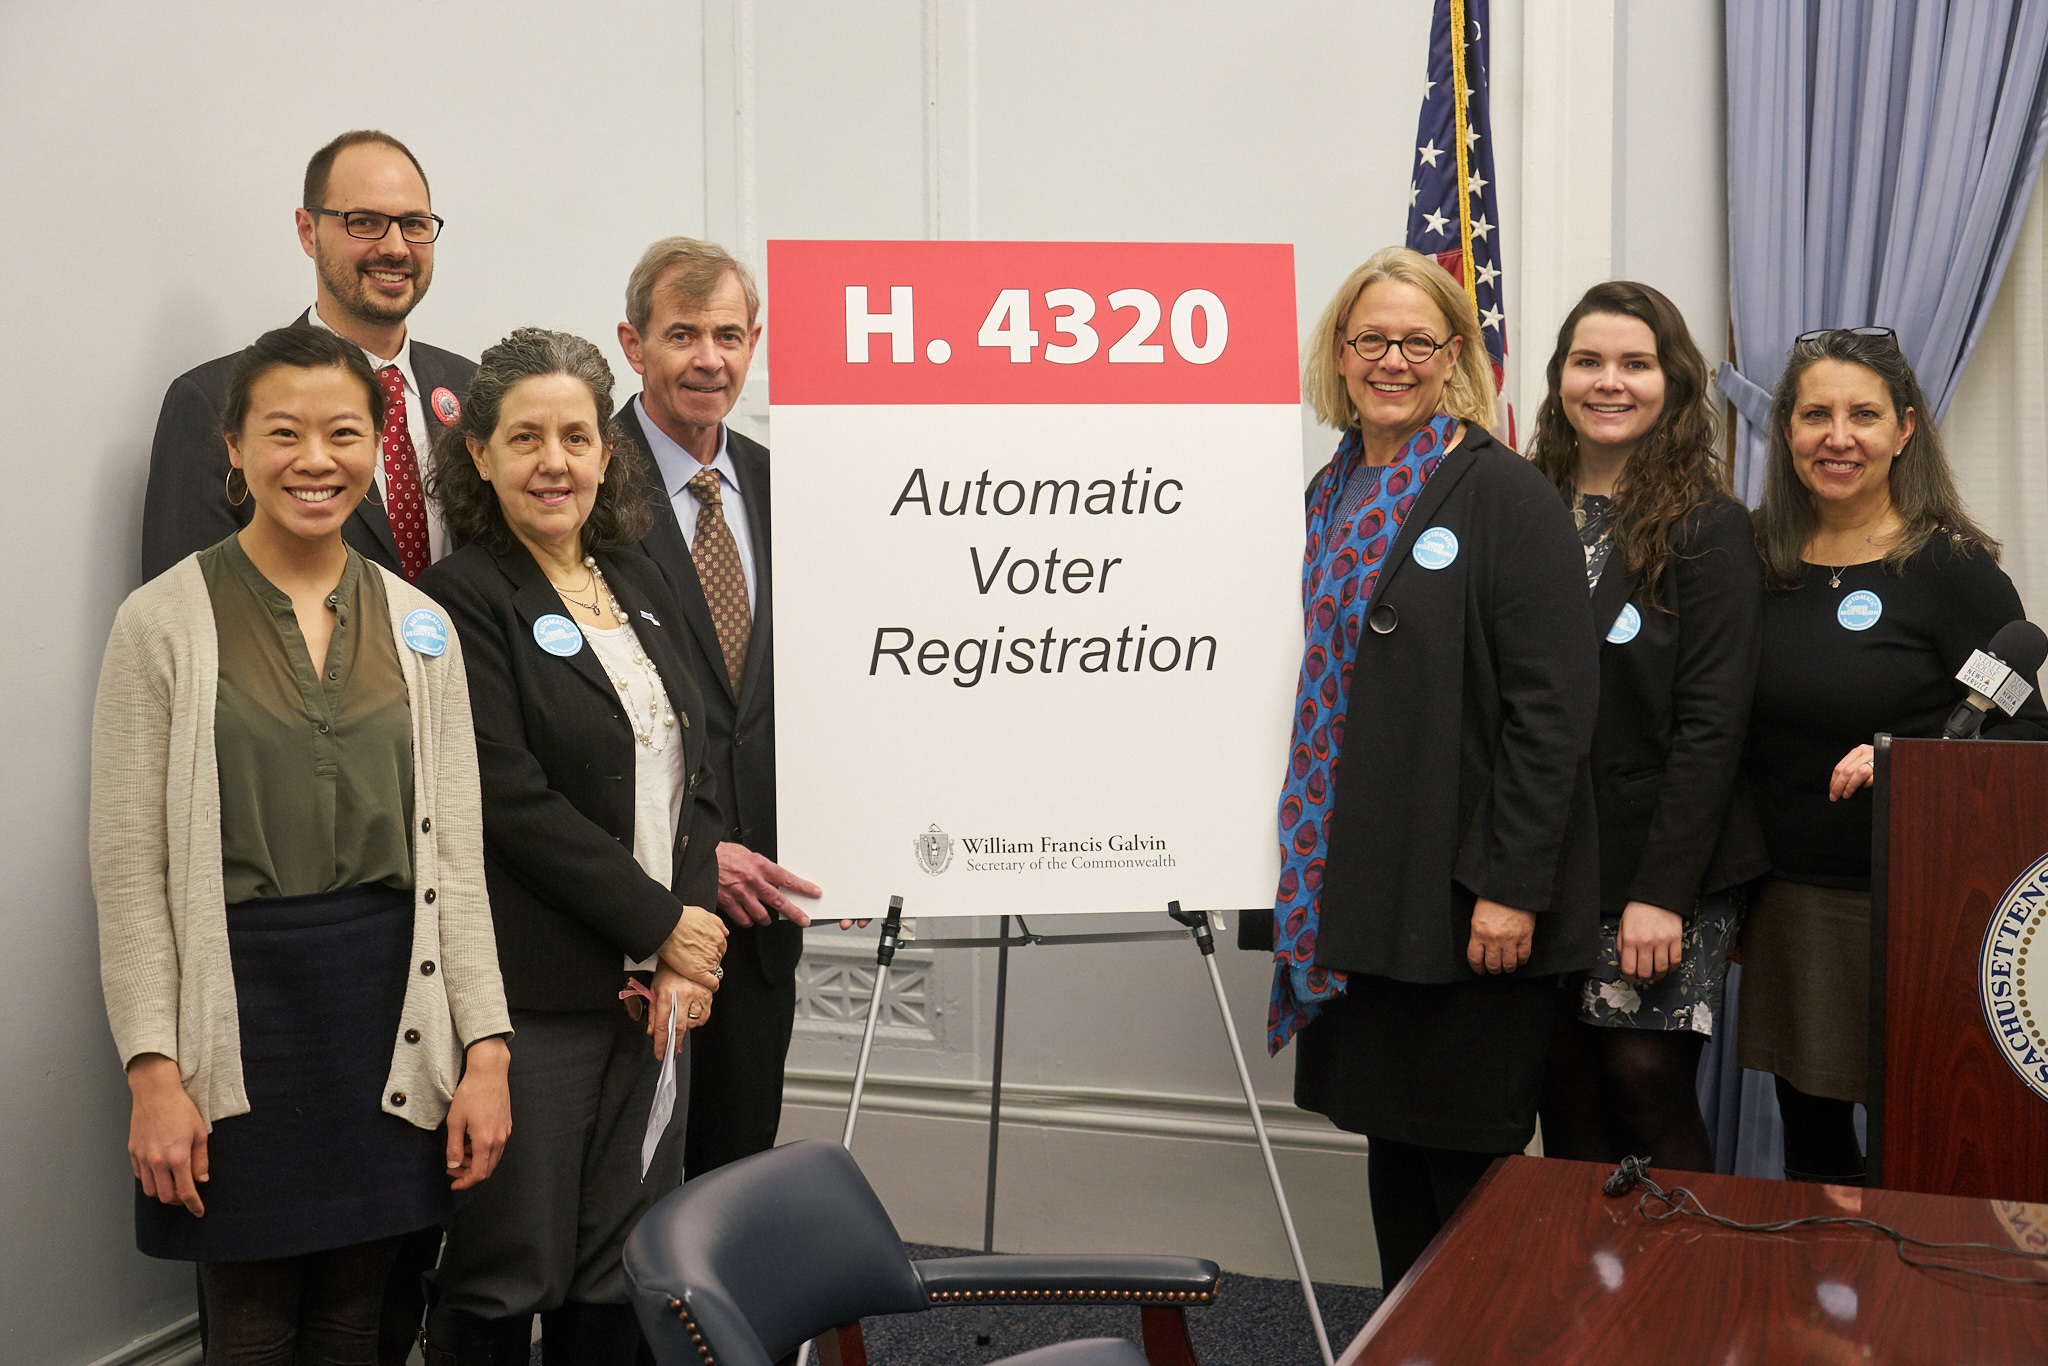 Secretary of State William F. Galvin with LEV founder Joyce Hackett (right of the sign) and members of the Election Modernization Coalition.